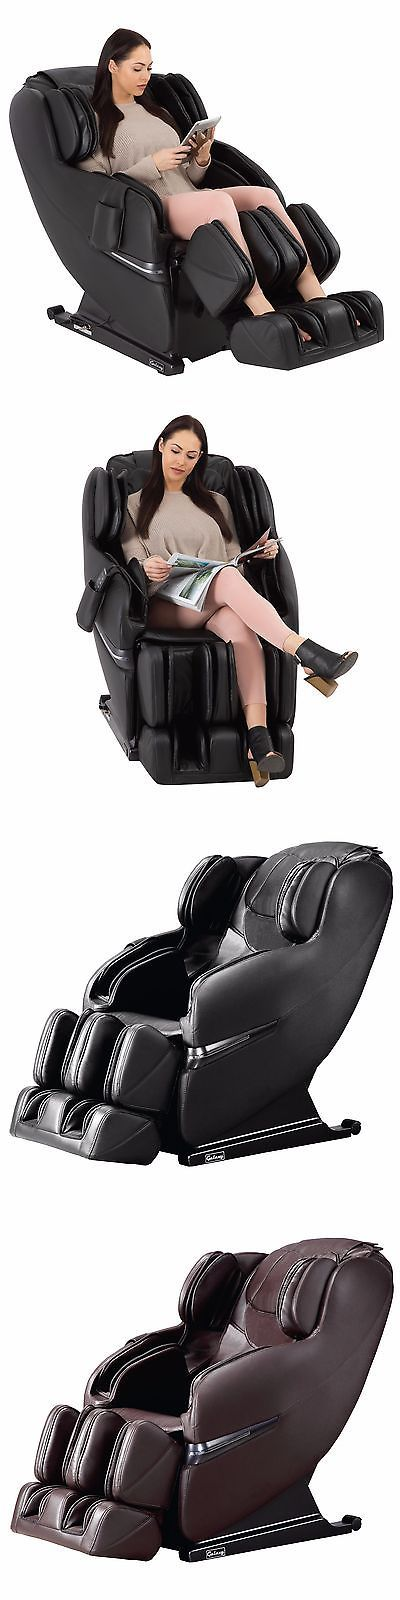 Electric Massage Chairs: Galaxy Optima 2.0 Full Body Shiatsu Massage Chair Recliner W/Heat And Outer Should BUY IT NOW ONLY: $999.0